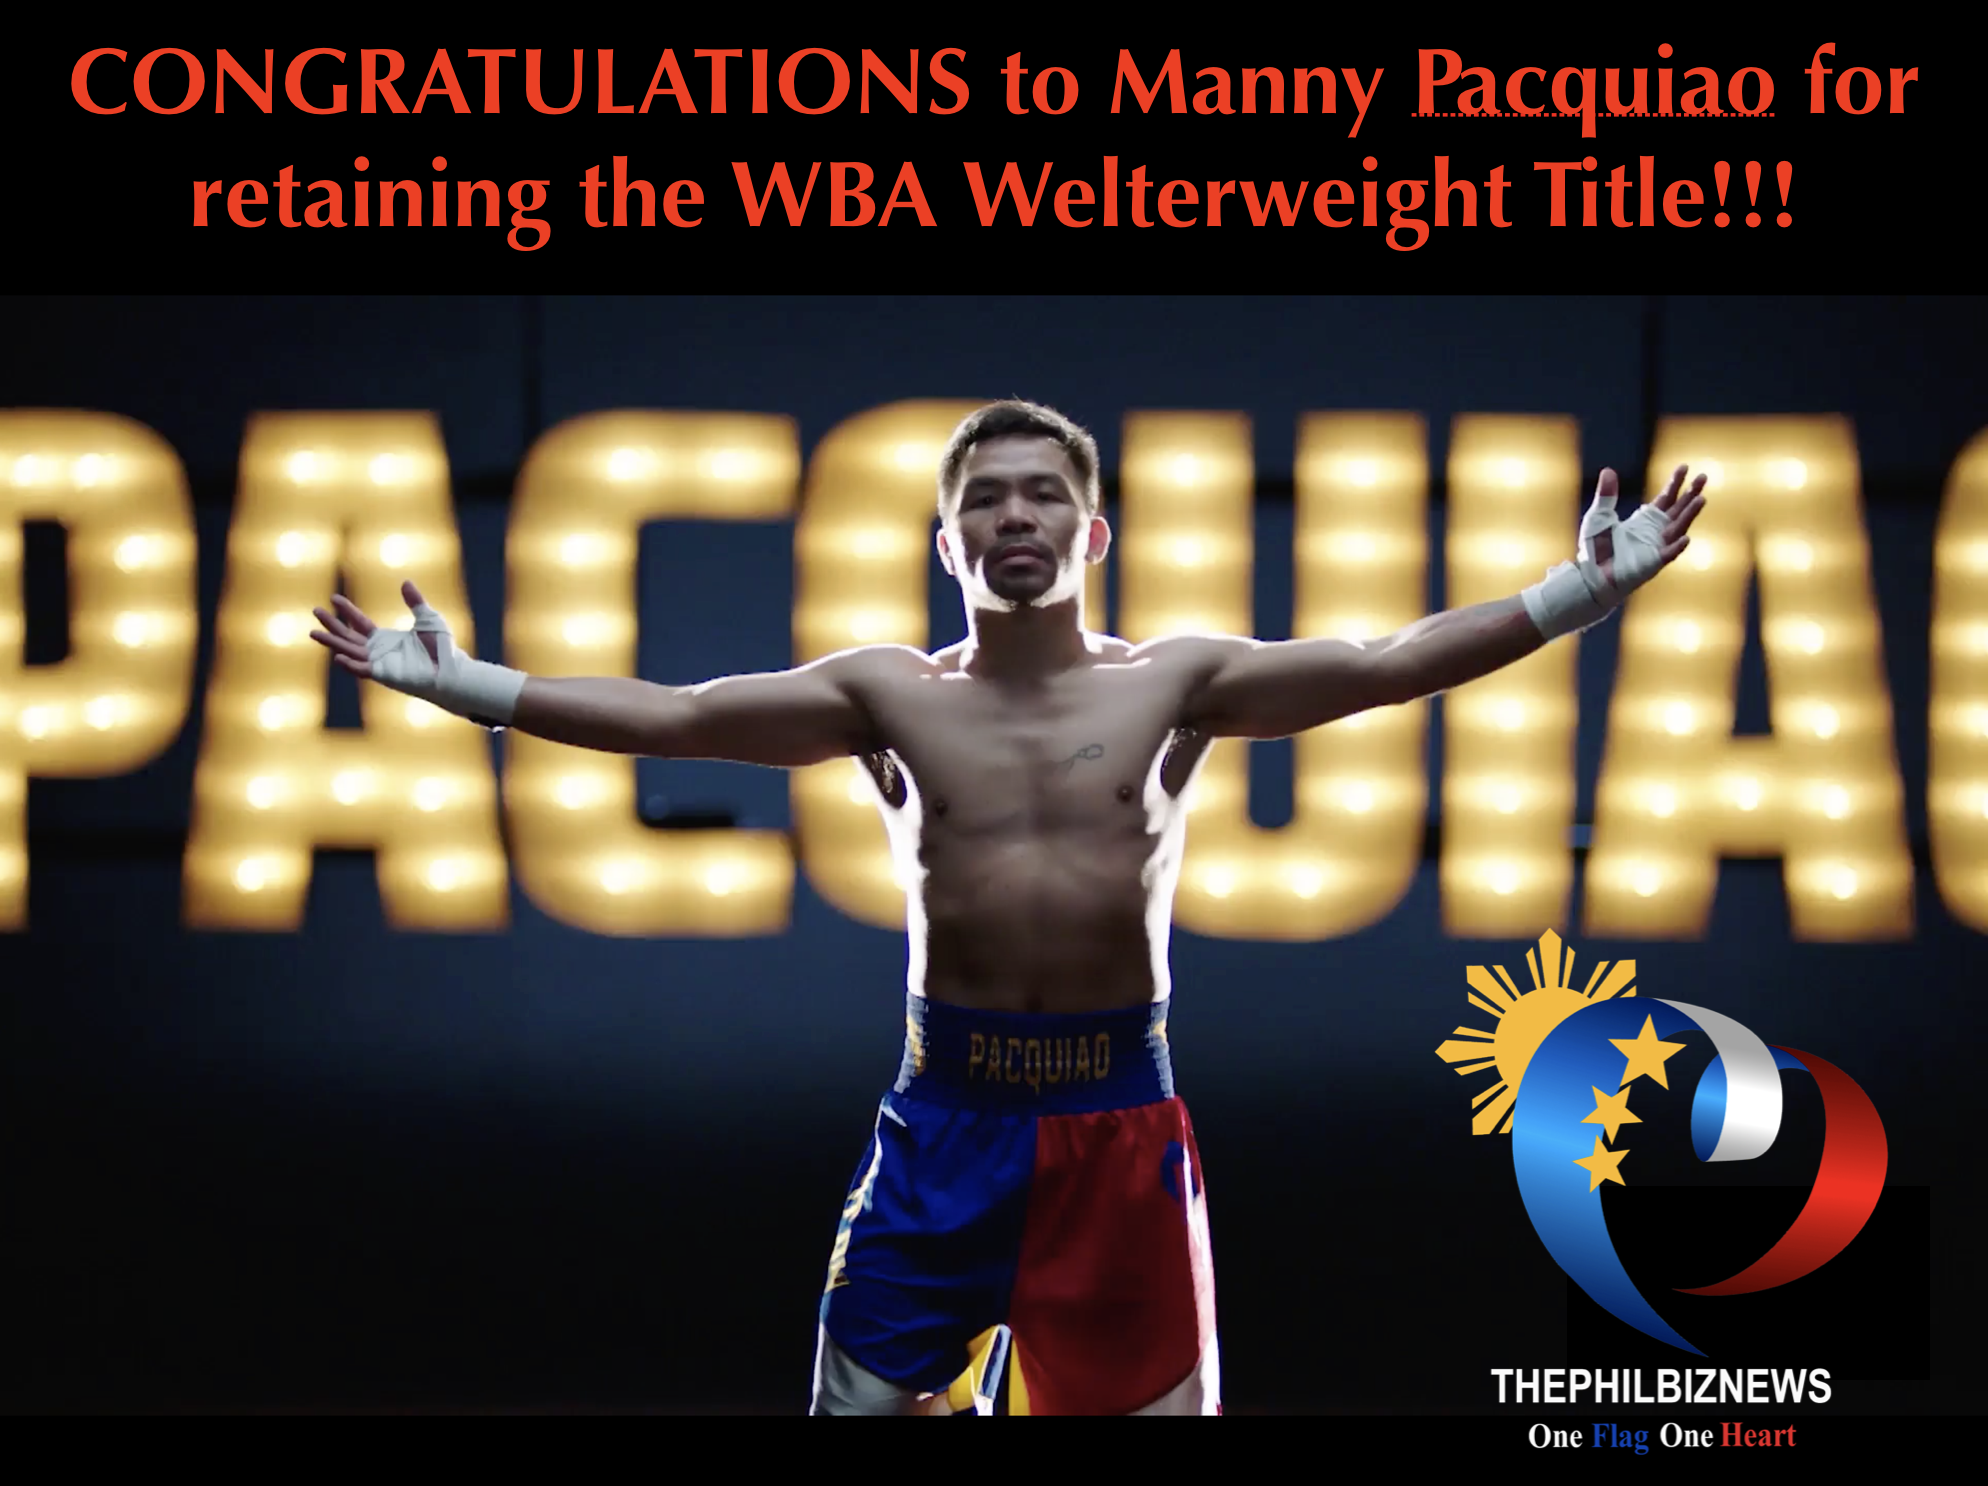 Manny Pacquiao retains WBA Welterweight Title against Broner via unanimous decision